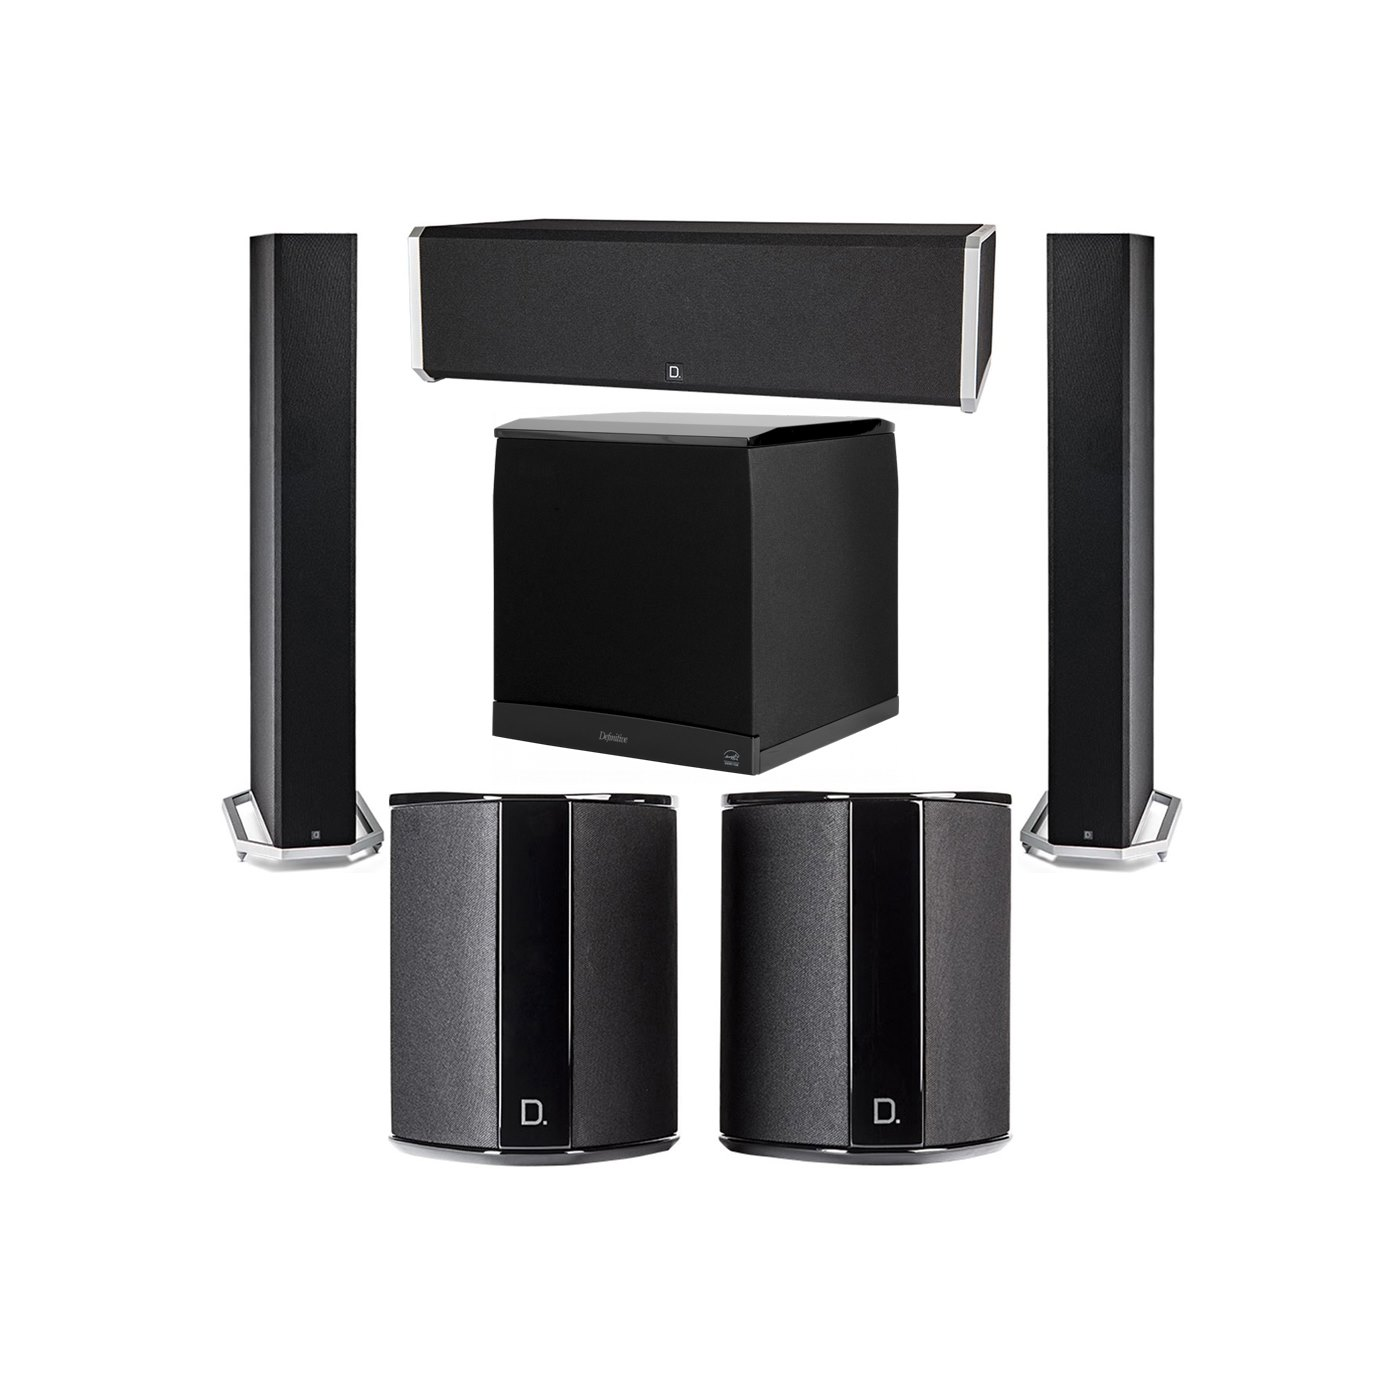 Definitive Technology 5.1 System with 2 BP9060 Tower Speakers, 1 CS9040 Center Channel Speaker, 2 SR9040 Surround Speaker, 1 Definitive Technology SuperCube 8000 Powered Subwoofer